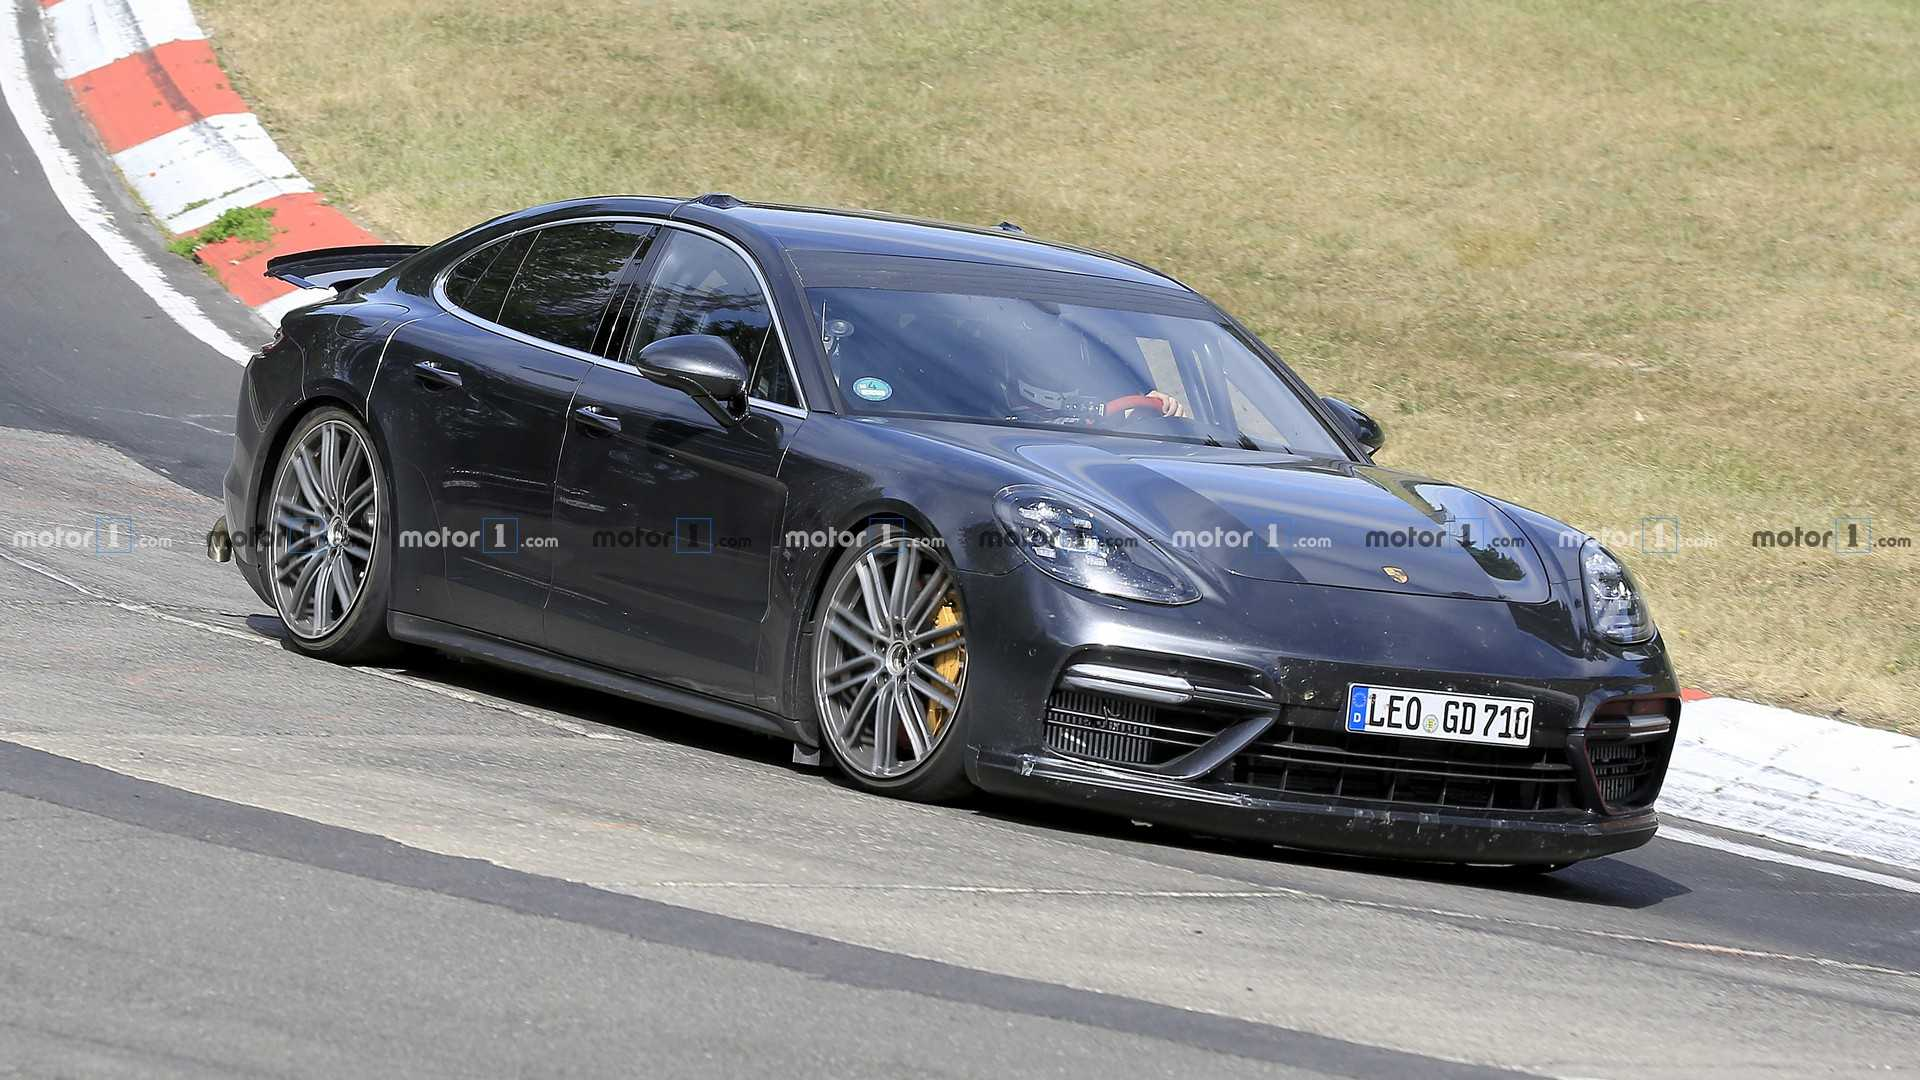 A highly unusual test build of the Porsche Panamera has recently been spotted making circles at the Nürburgring Complex in Germany. The car had quad tailpipes facing down and an extremely low ride height.